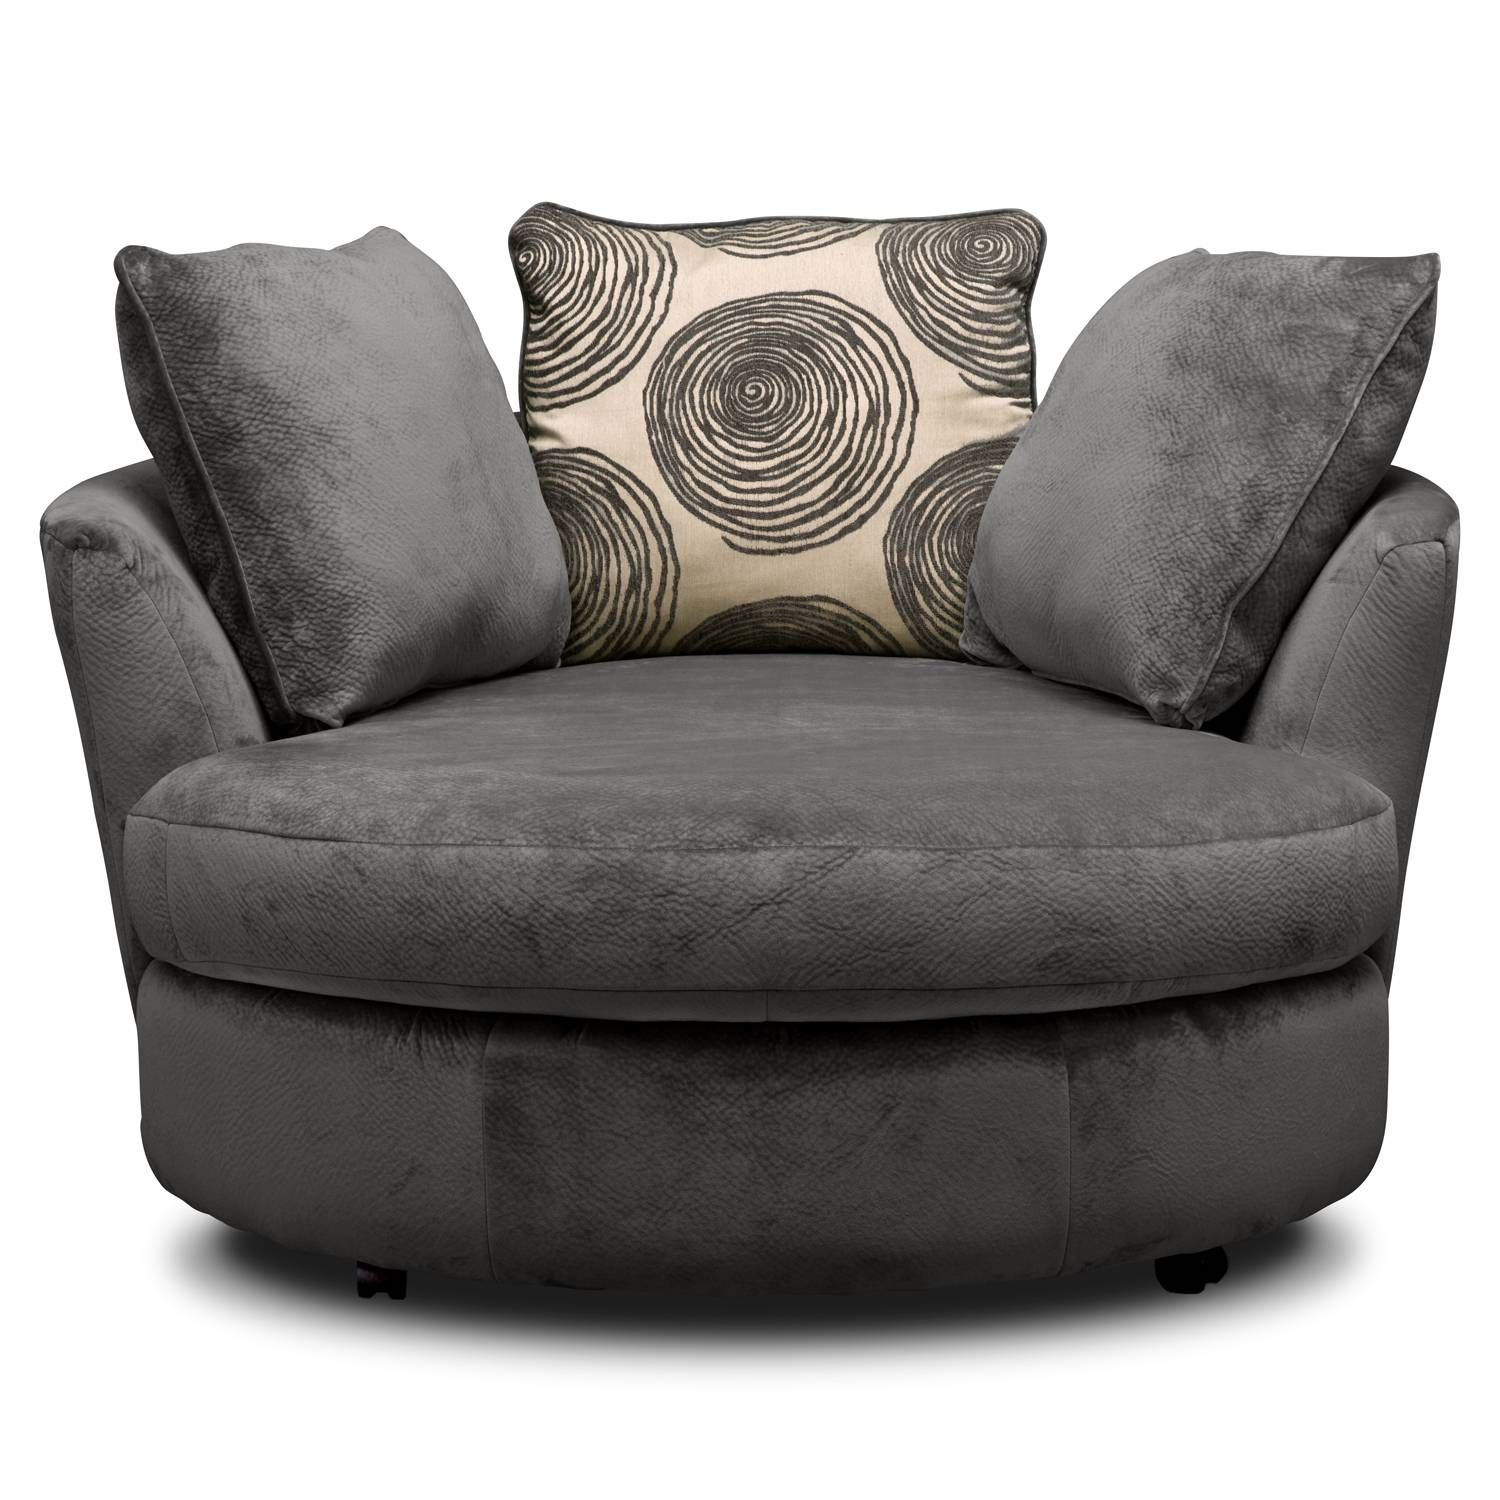 Sofas Center : Circle Sofahair Big Home Designs Wicker And inside Big Round Sofa Chairs (Image 18 of 30)